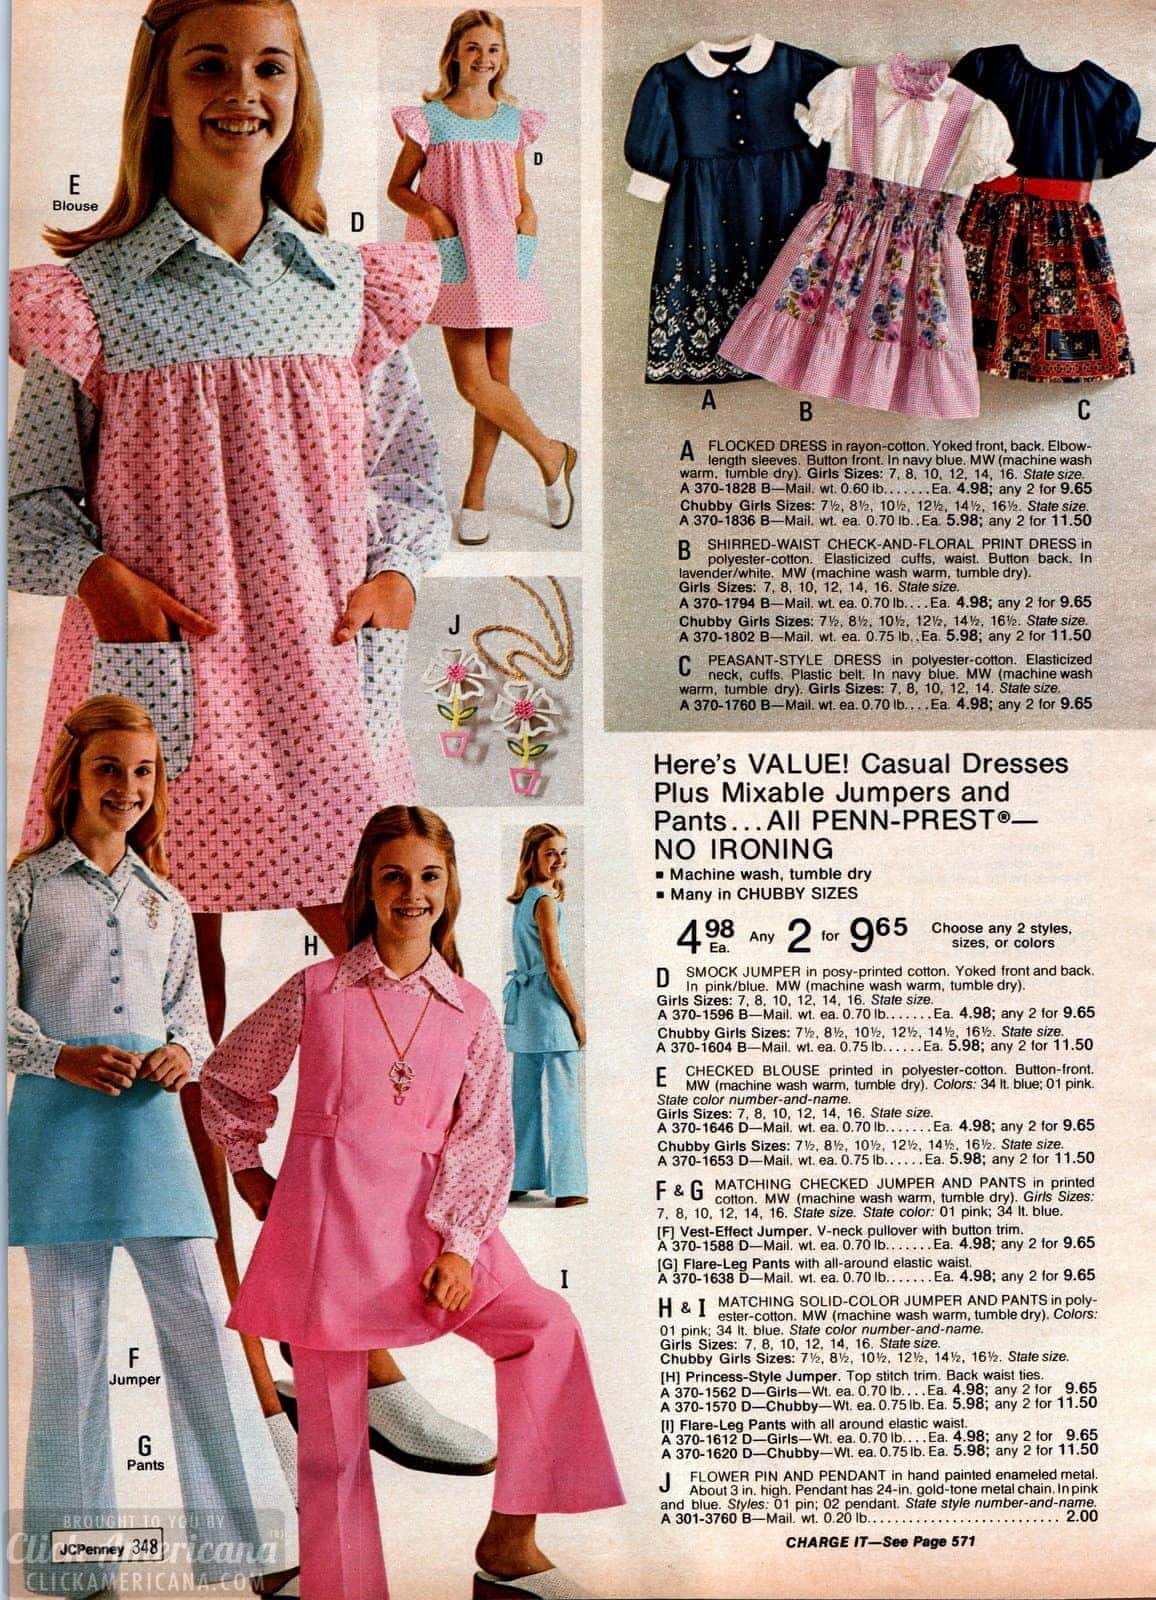 70s casual dresses plus mix-and-match jumpers and pants for girls